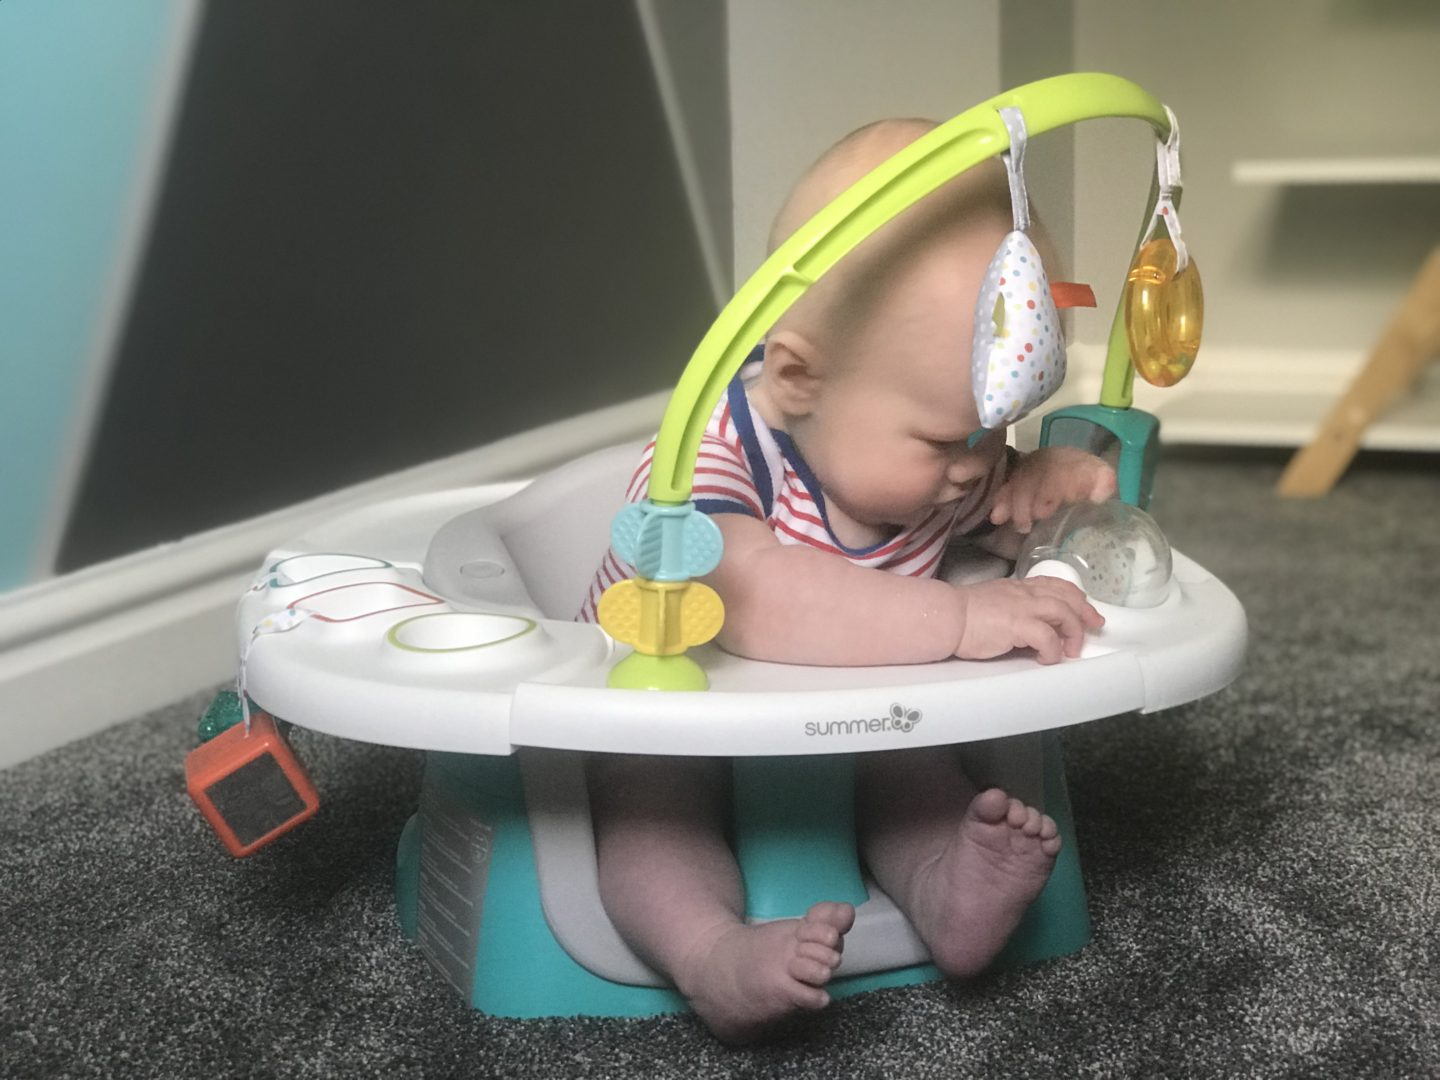 Felix in his Summer Delux 4 in 1 Superseat looking at the activity wheel